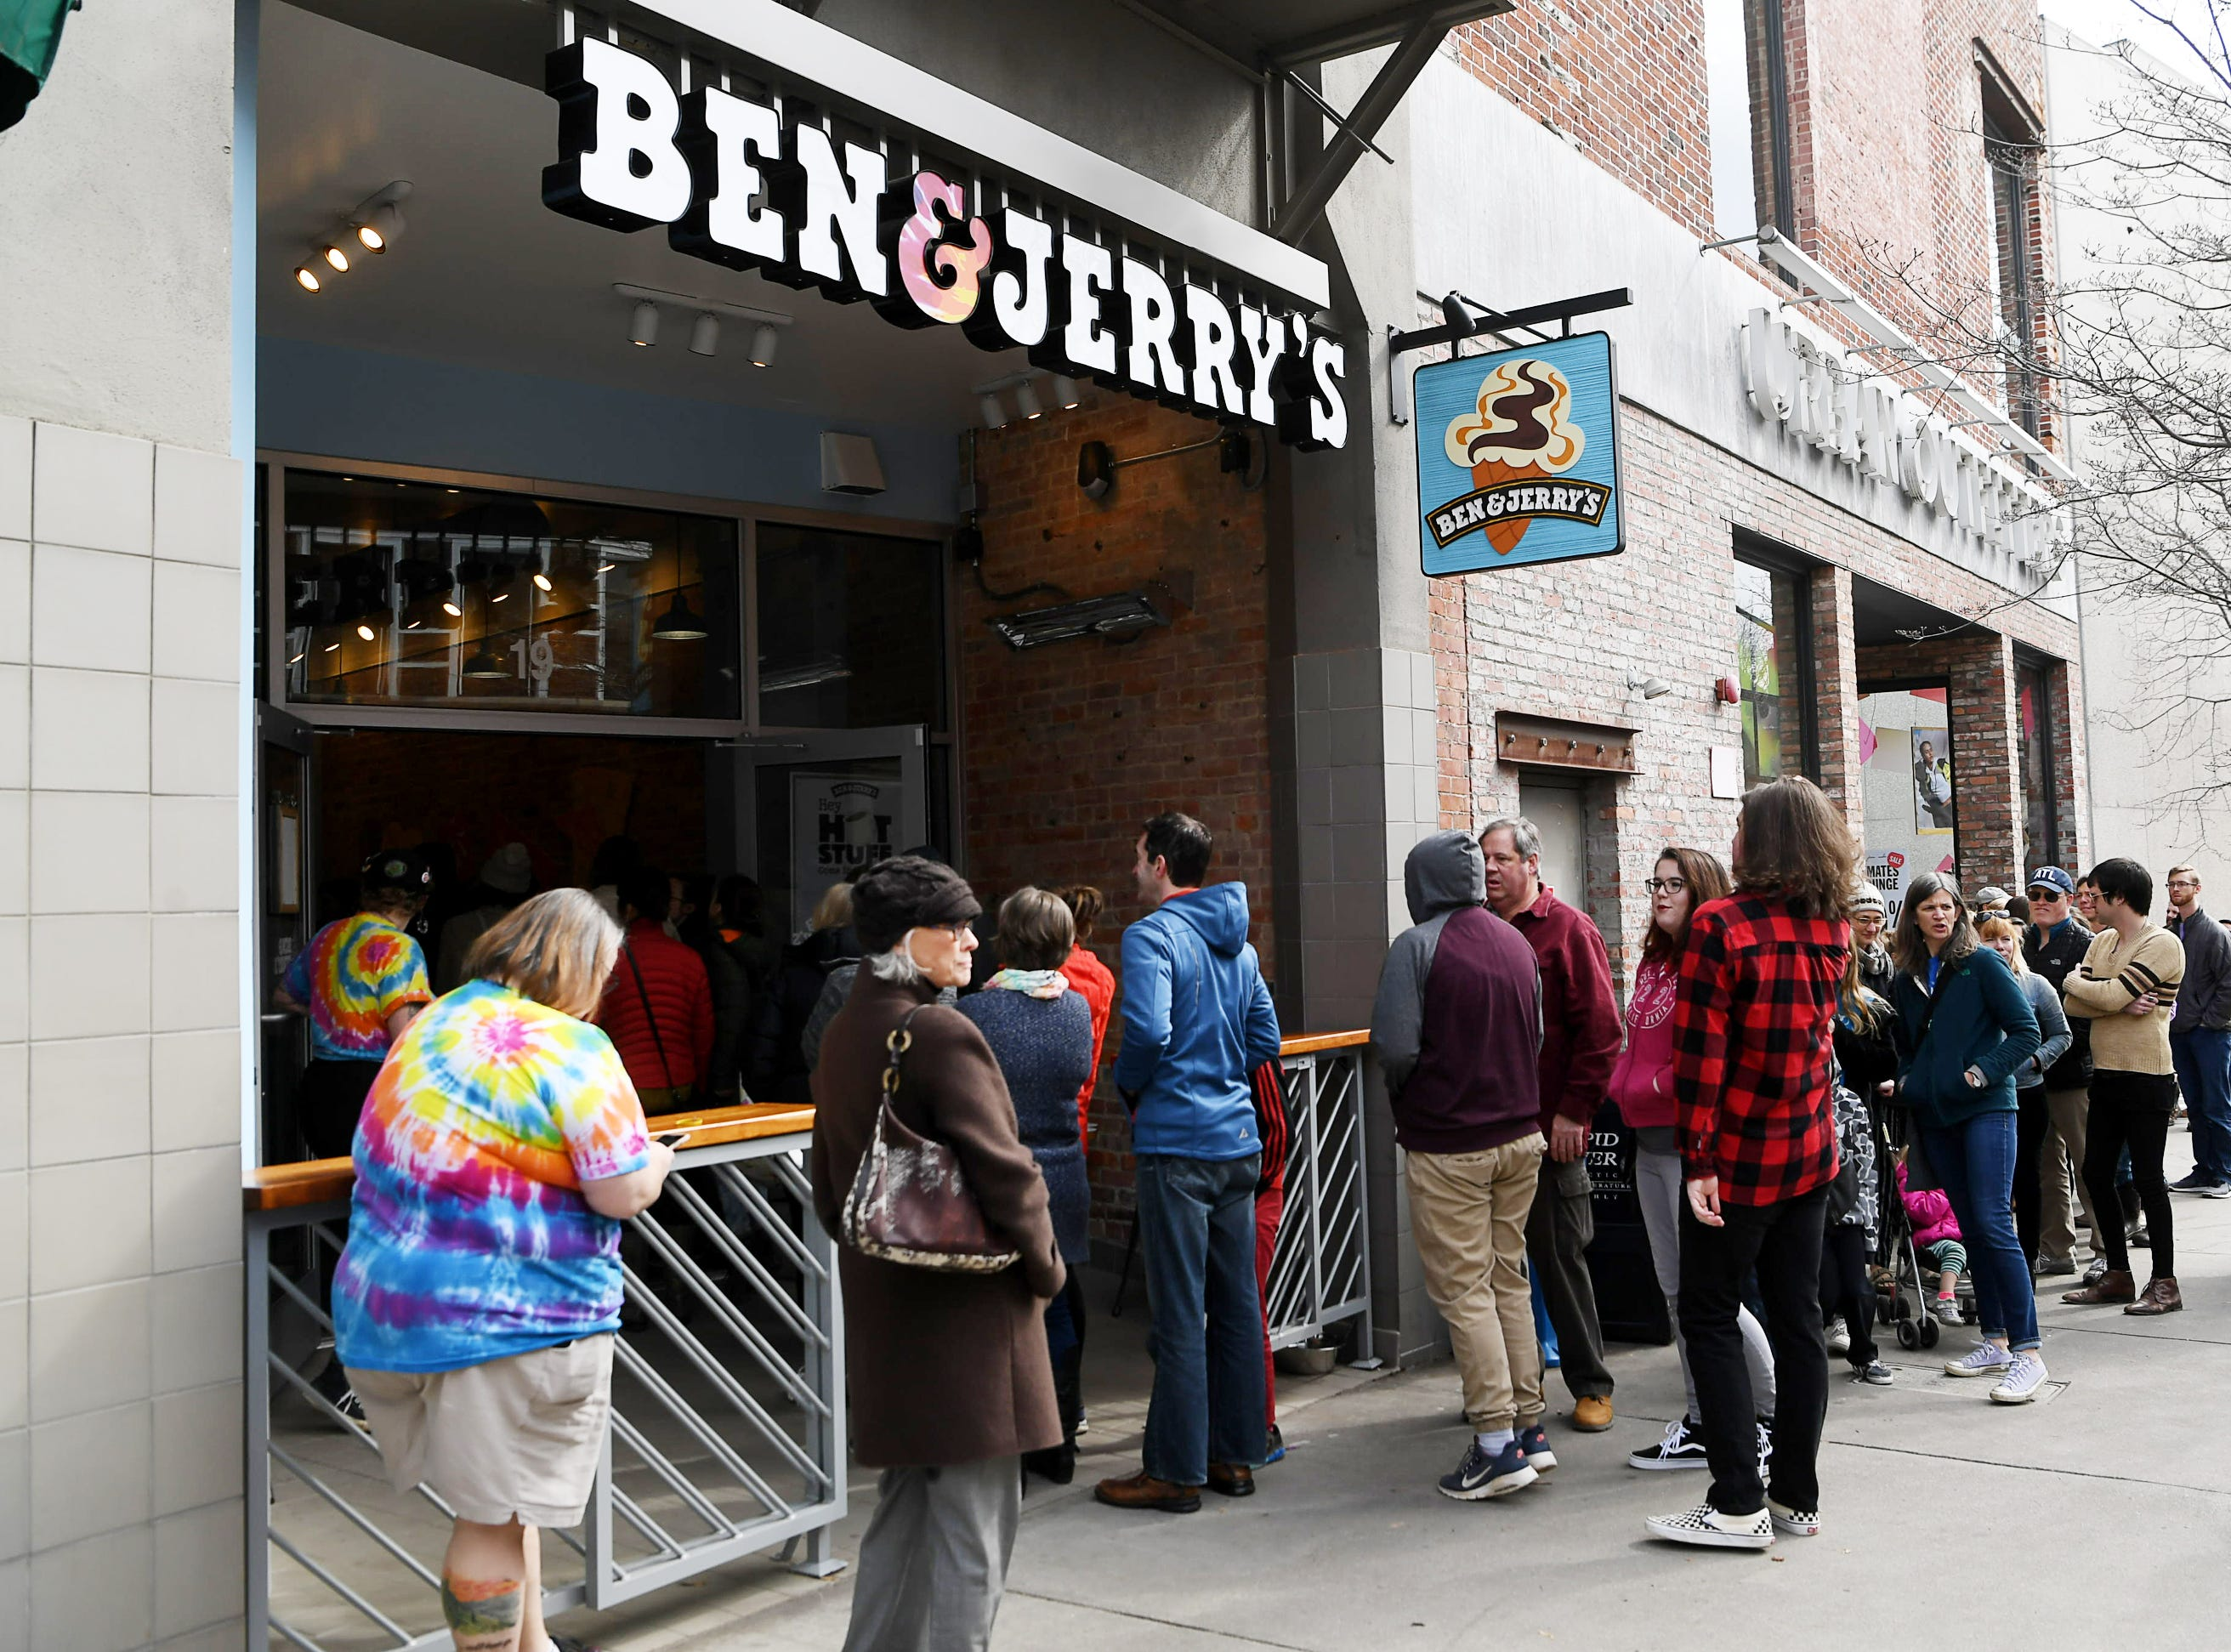 People wait in line for a free scoop of ice cream and to meet the founders of Ben and Jerry's in Asheville Feb. 9, 2019.